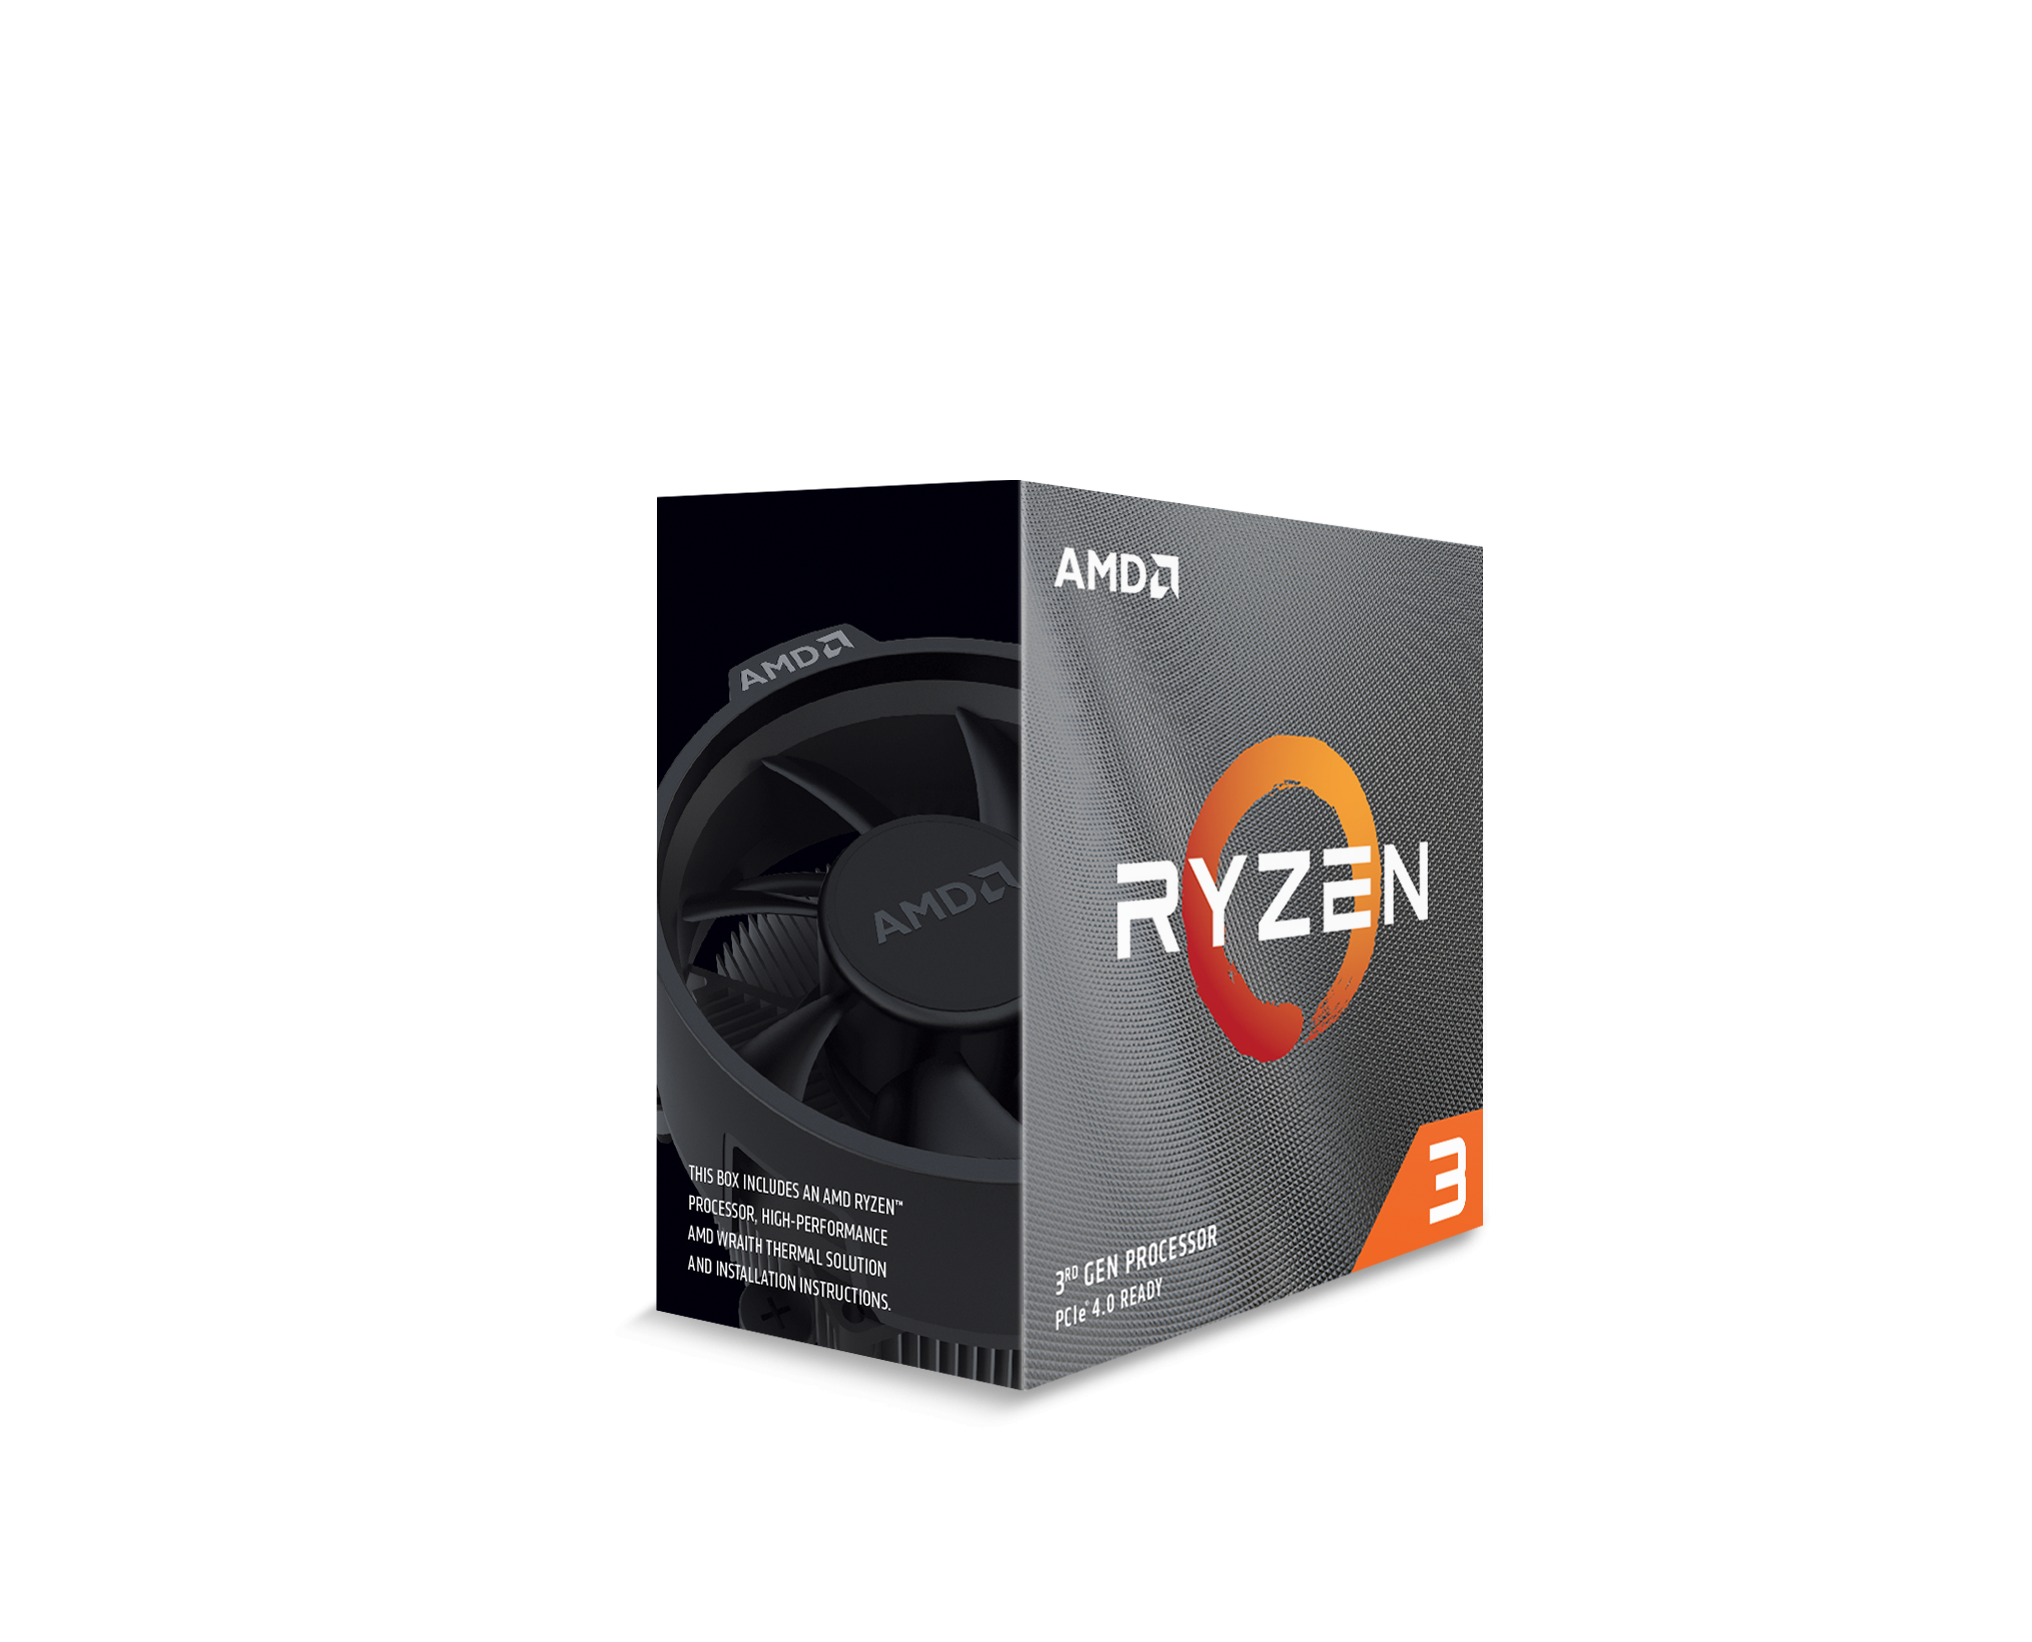 Процесор AMD RYZEN 3 3100 4-Core 3.6 GHz (3.9 GHz Turbo) 18MB/65W/AM4/BOX-2